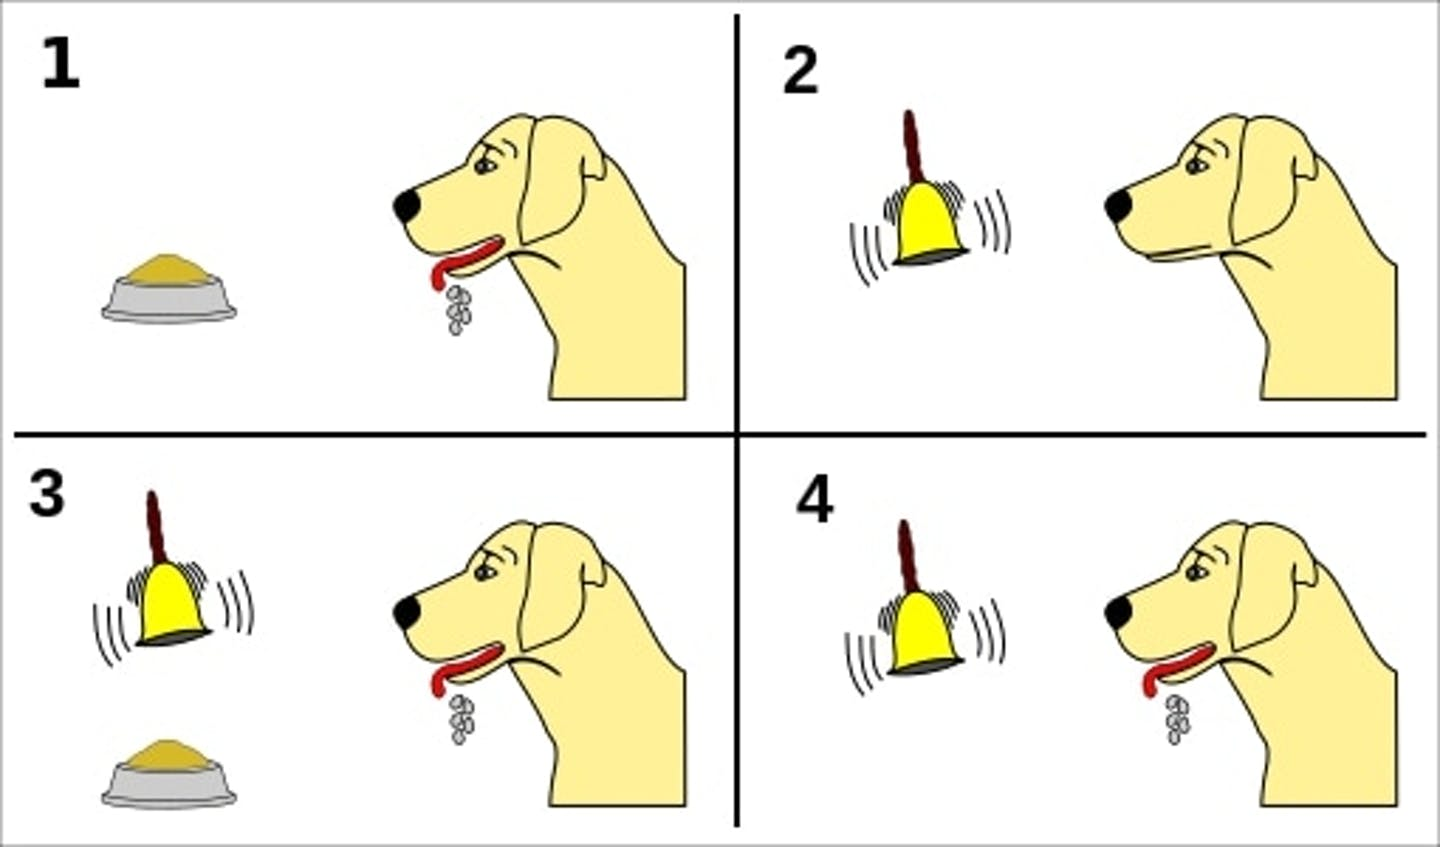 An image showing a dog salivating when offered food, not salivating when a bell is rung, then salivating when a bell is rung and food is offered and finally salivating when just a bell is rung.